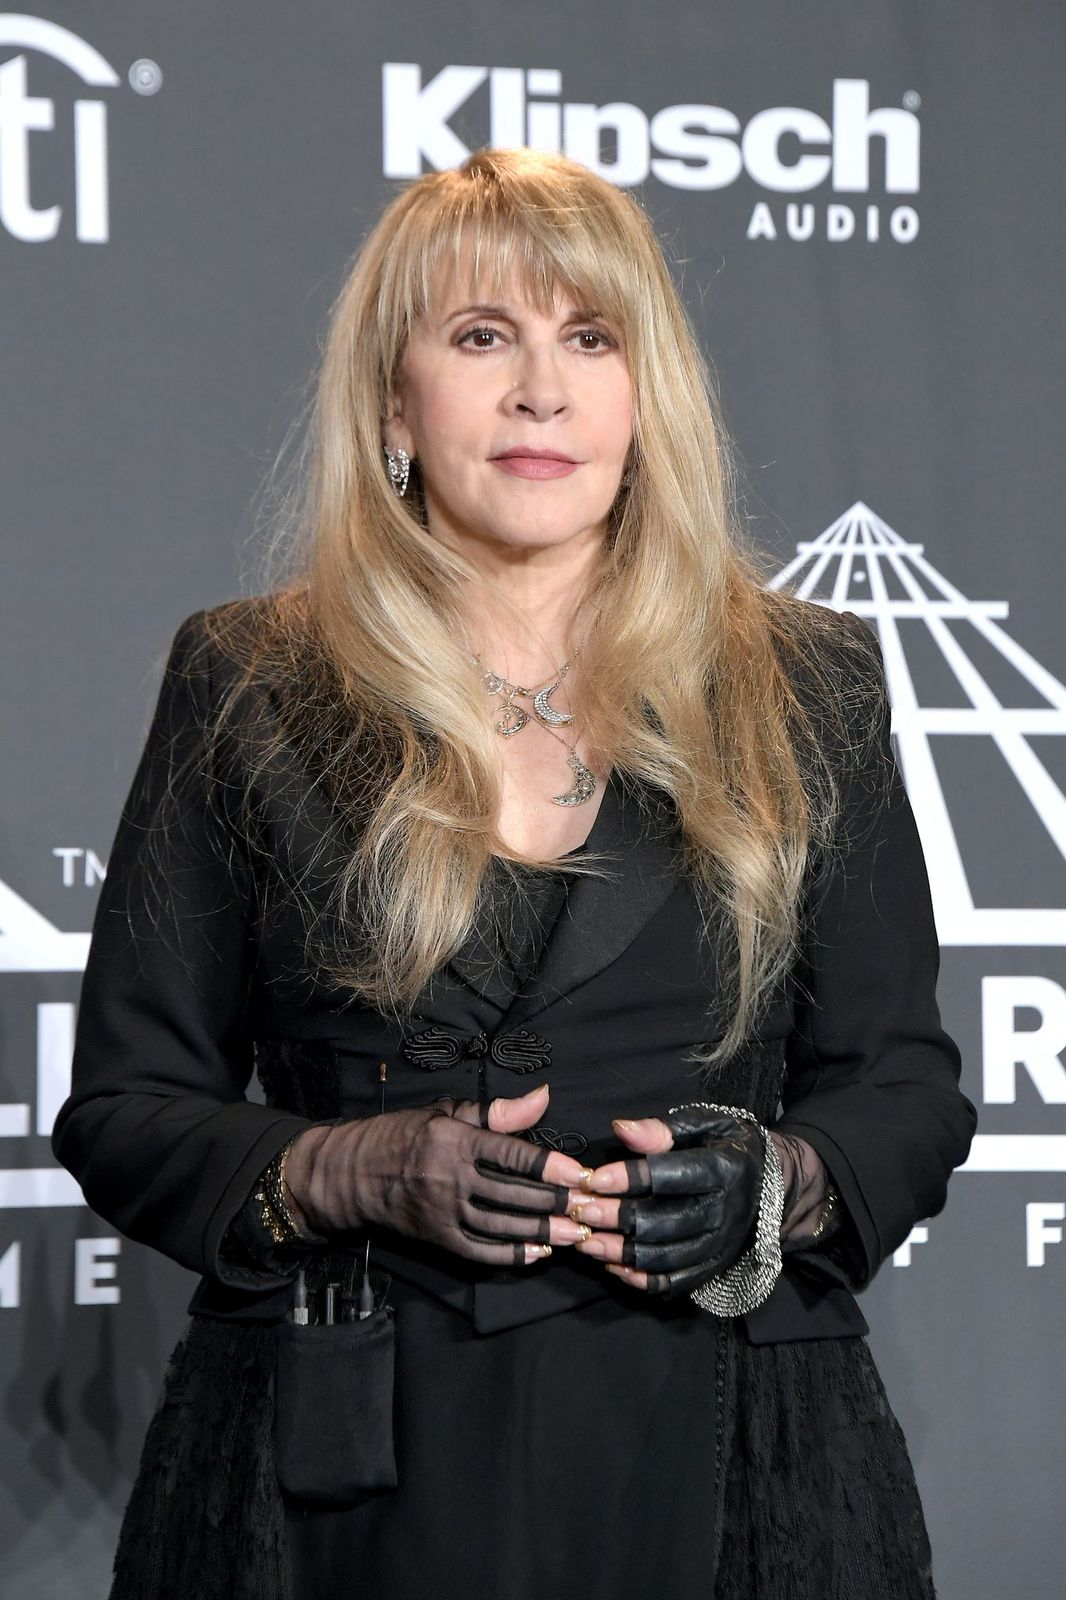 Inductee Stevie Nicks at the 2019 Rock & Roll Hall Of Fame Induction Ceremony - Press Room at Barclays Center on March 29, 2019 | Photo: Getty Images